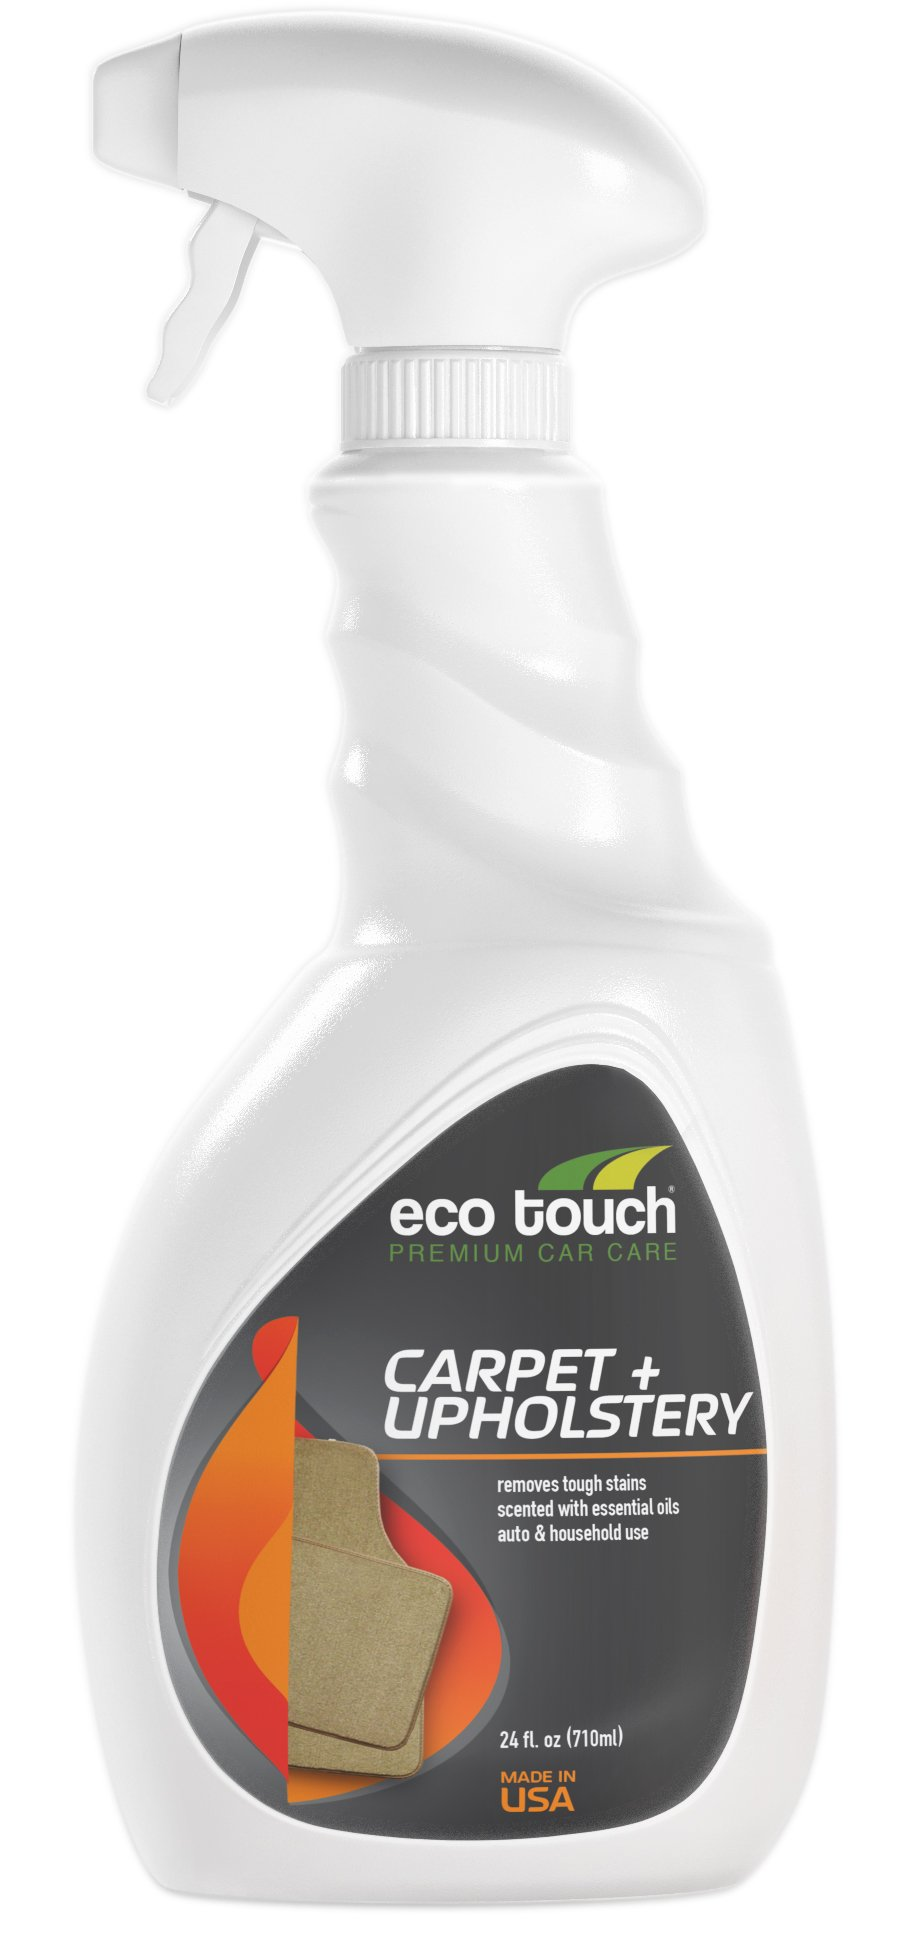 carpet rug upholstery spray cleaner 24 oz coffee wine stain car home floor safe ebay. Black Bedroom Furniture Sets. Home Design Ideas